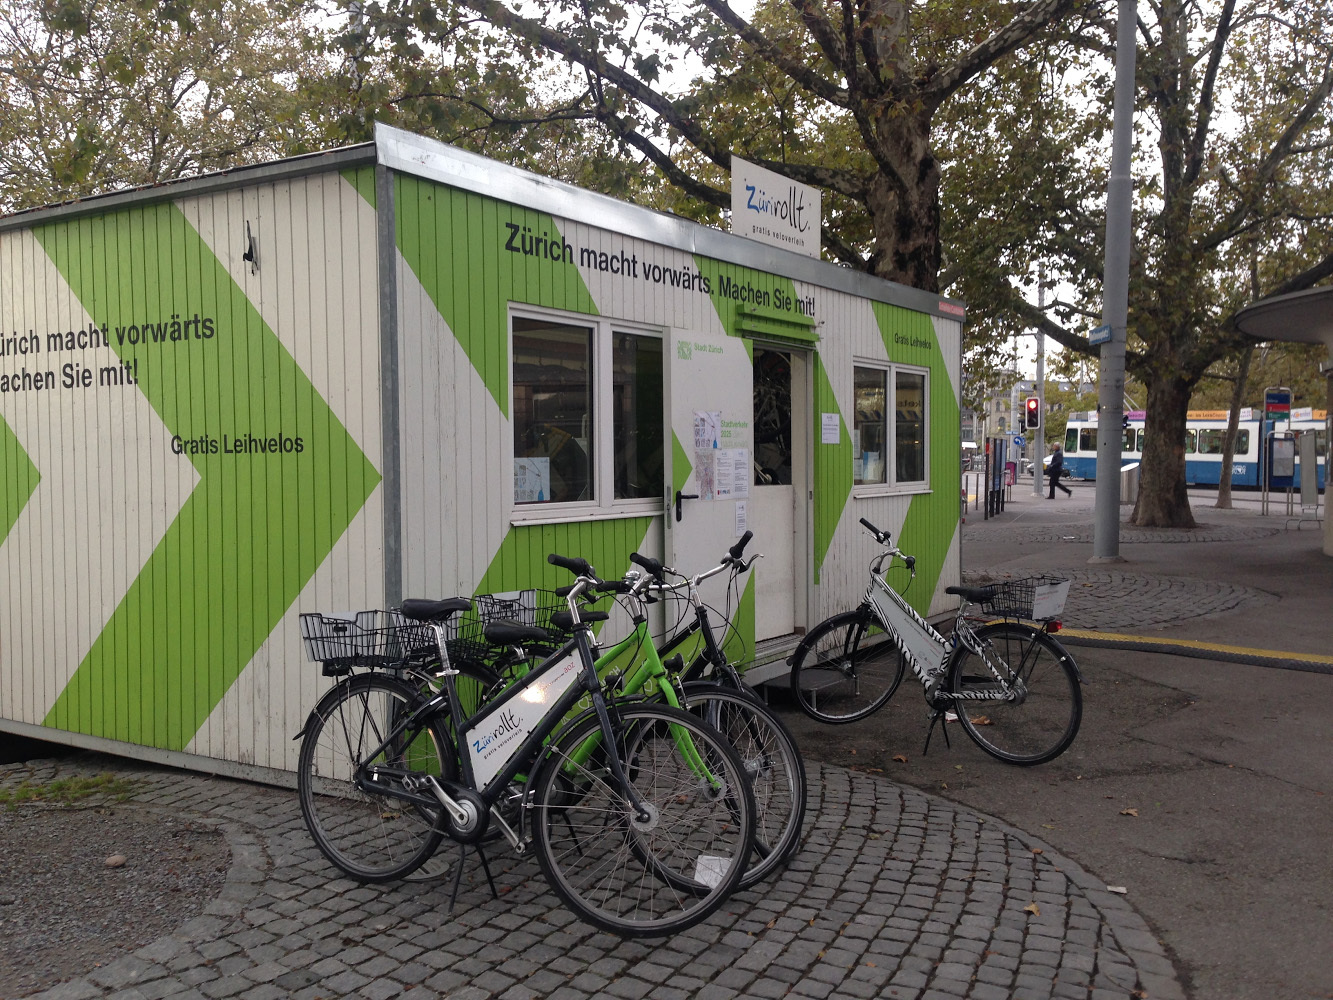 Free bike hire • Zurich